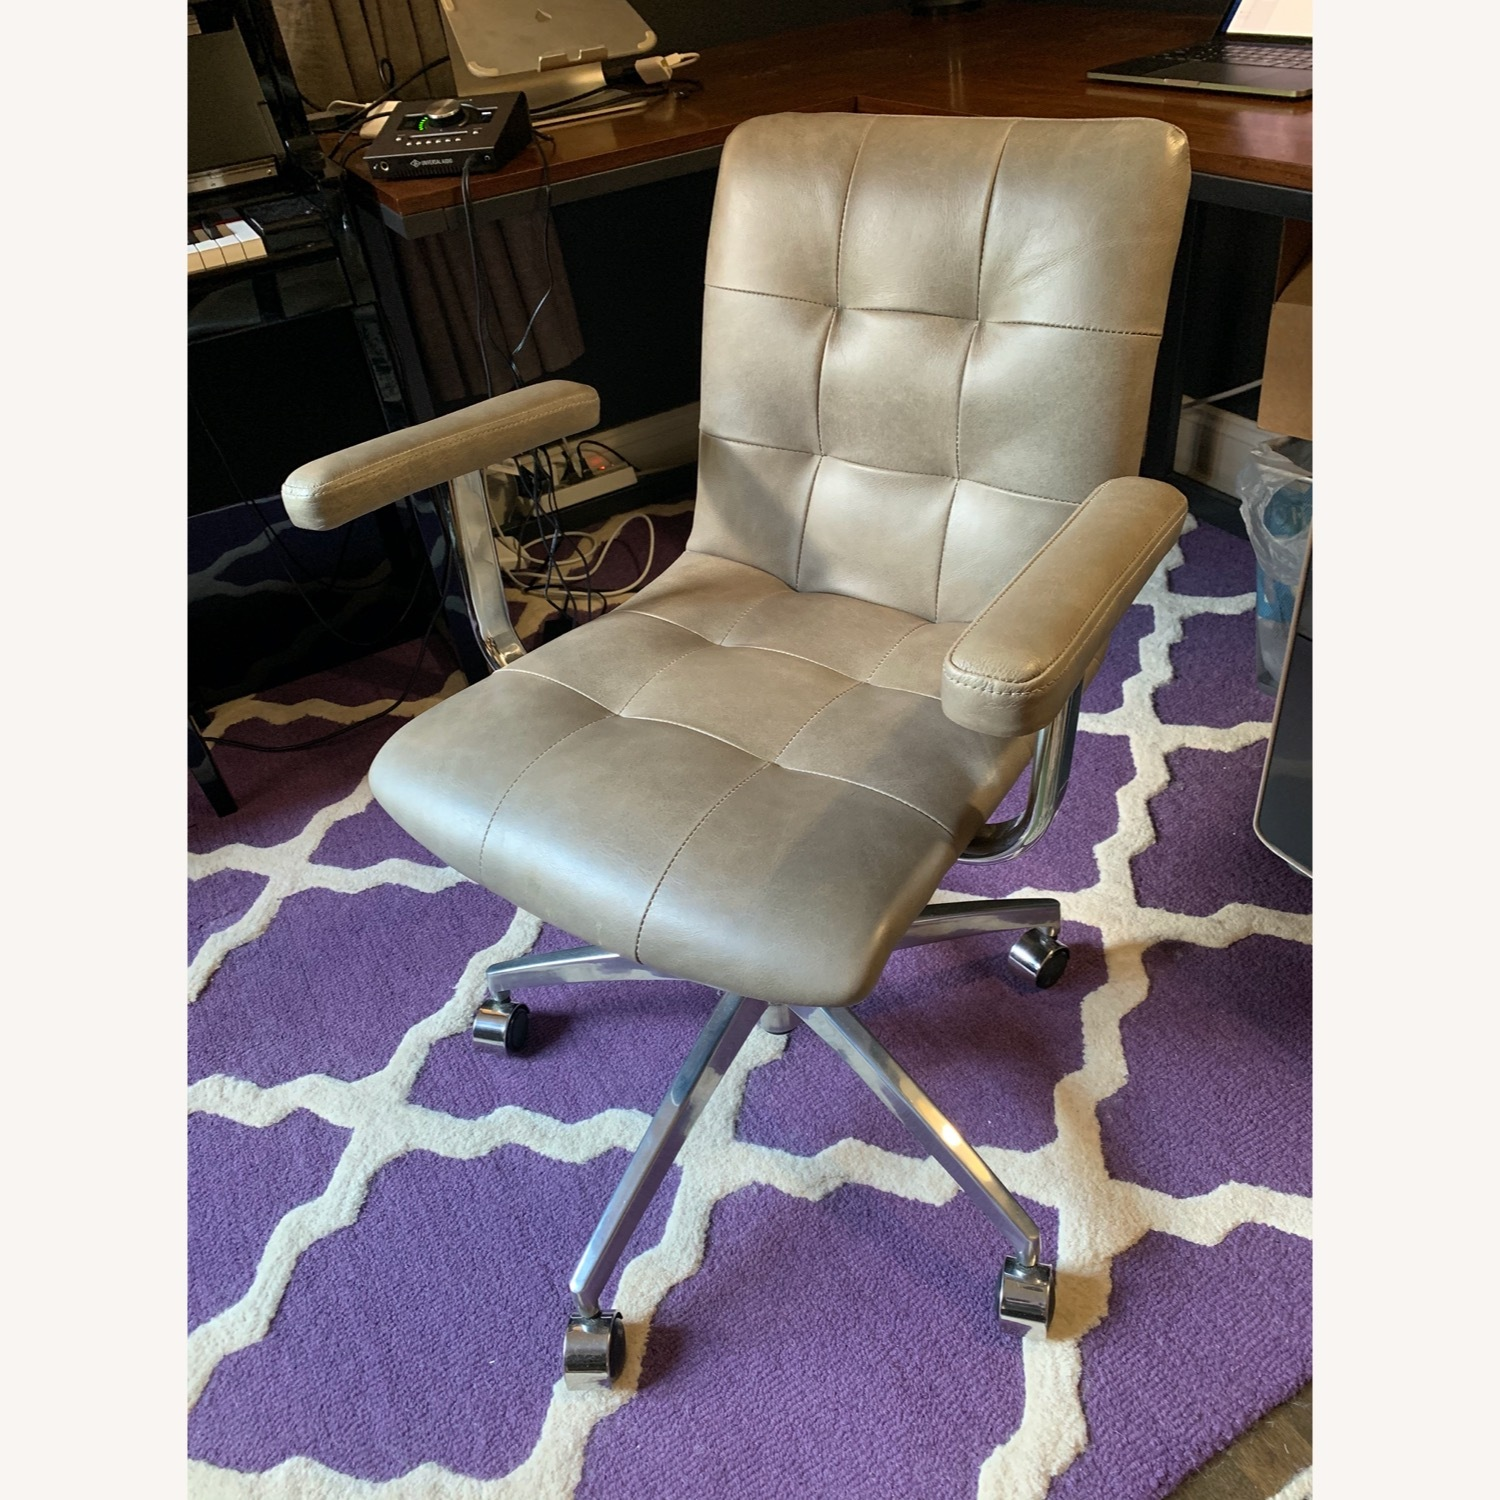 Crate and Barrel Leather Office Chair - image-1